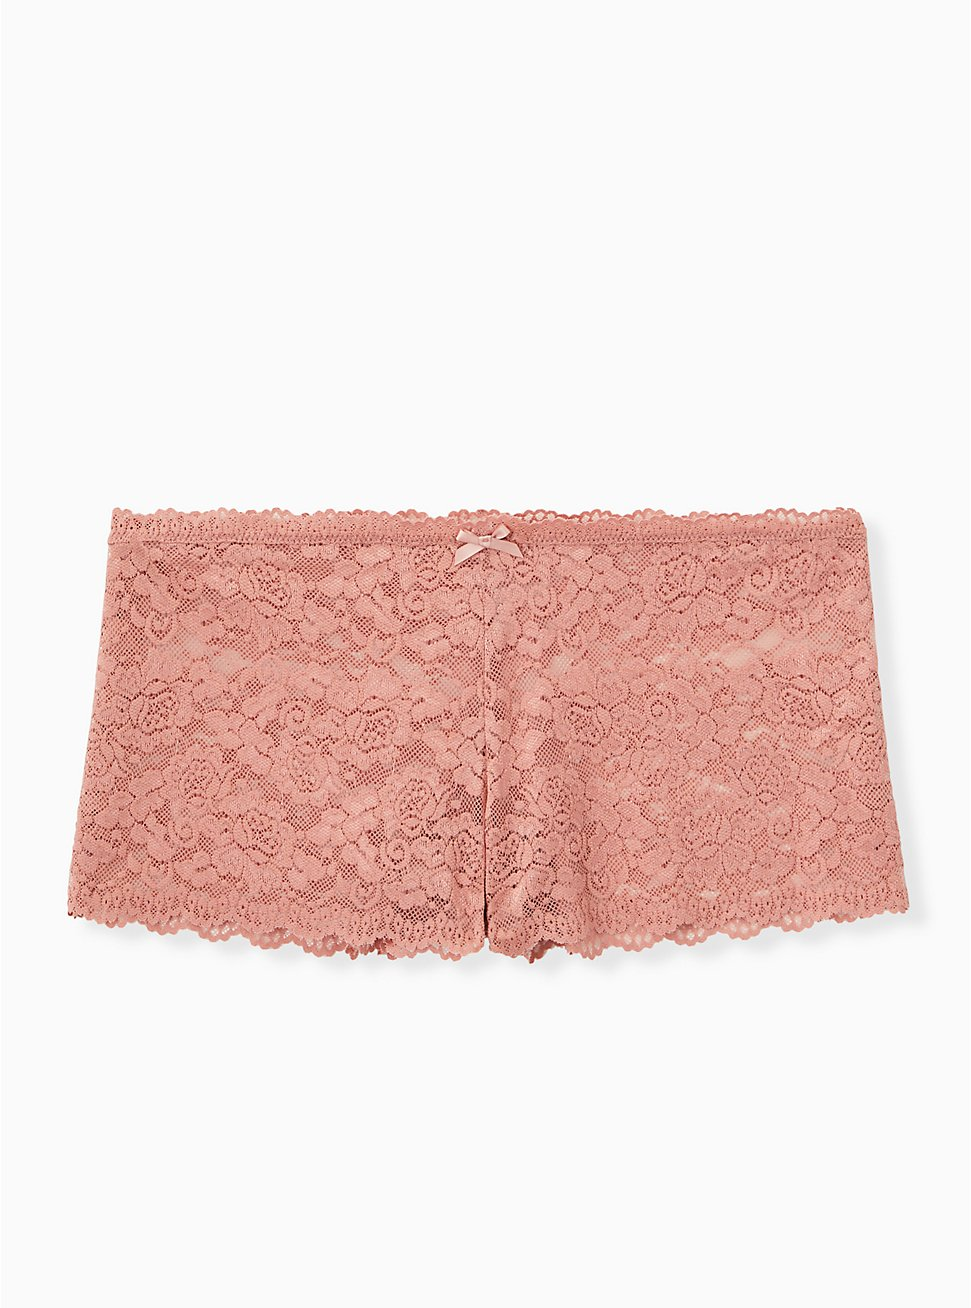 Dusty Pink Lace Cheeky Panty, ASH ROSE, hi-res